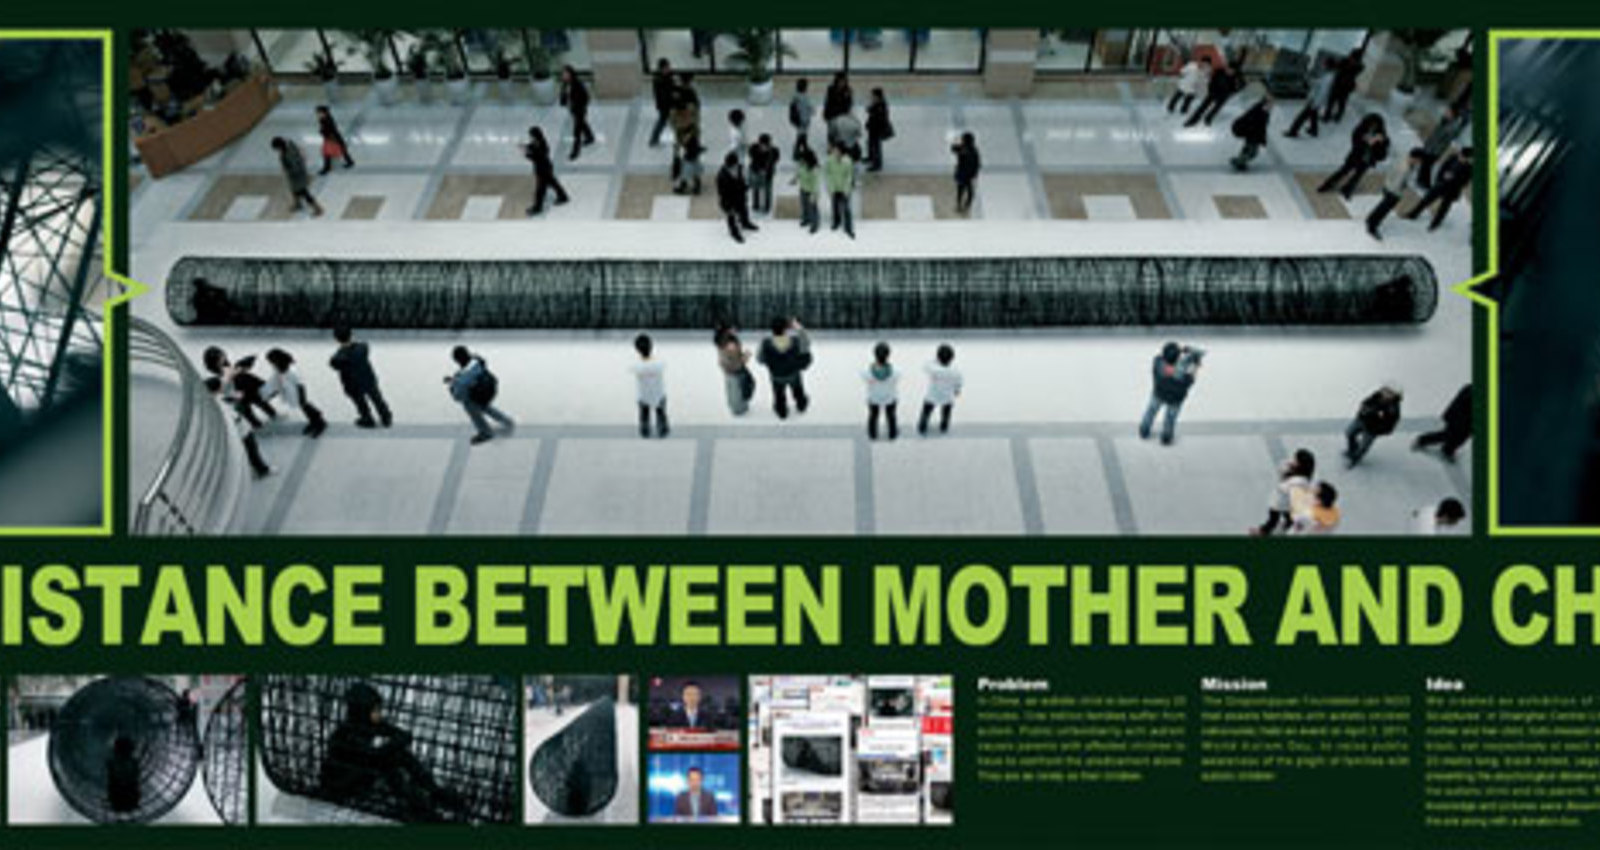 The Distance Between Mother and Child